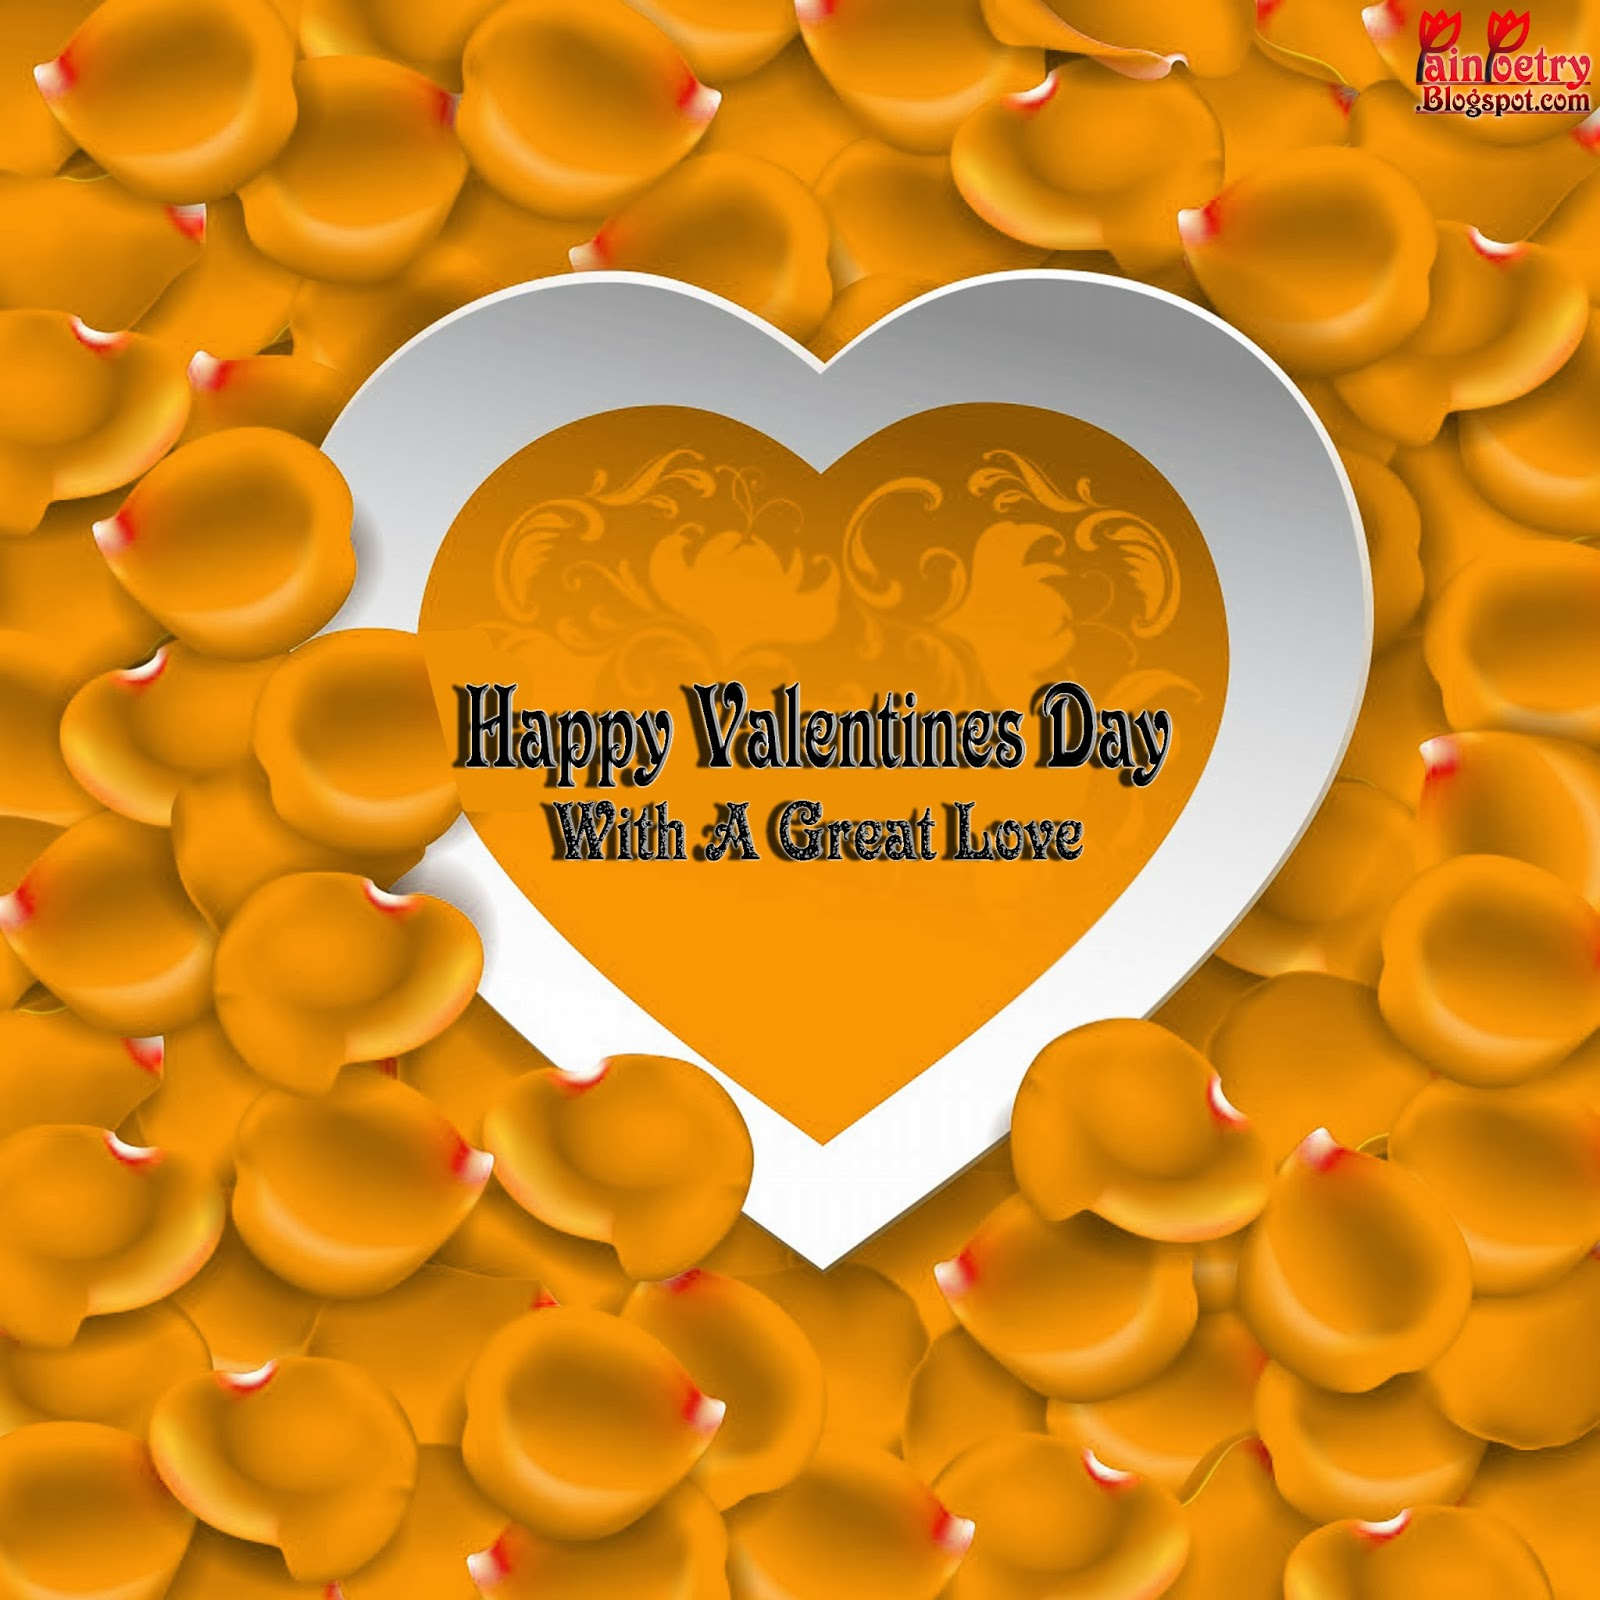 Happy-Valentines-Day-Wishes-Walpaper-With-Yellow-Petal-Image-HD-Wide